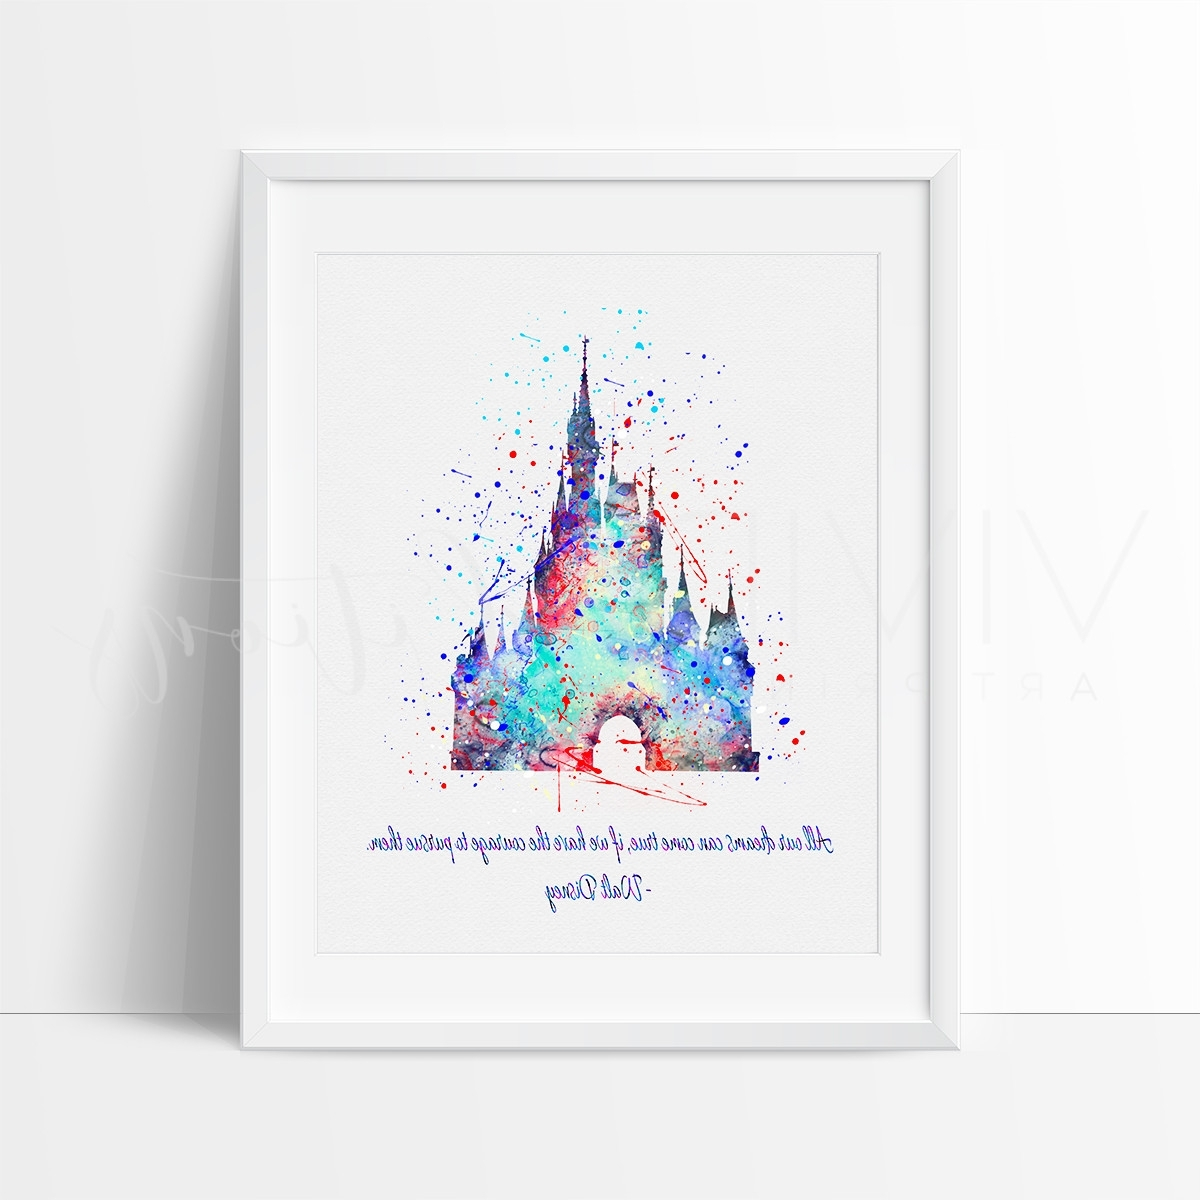 Well Known Disney Princess Framed Wall Art For Cinderella Princess Castle, Walt Disney Quote Watercolor Art Print (View 15 of 15)